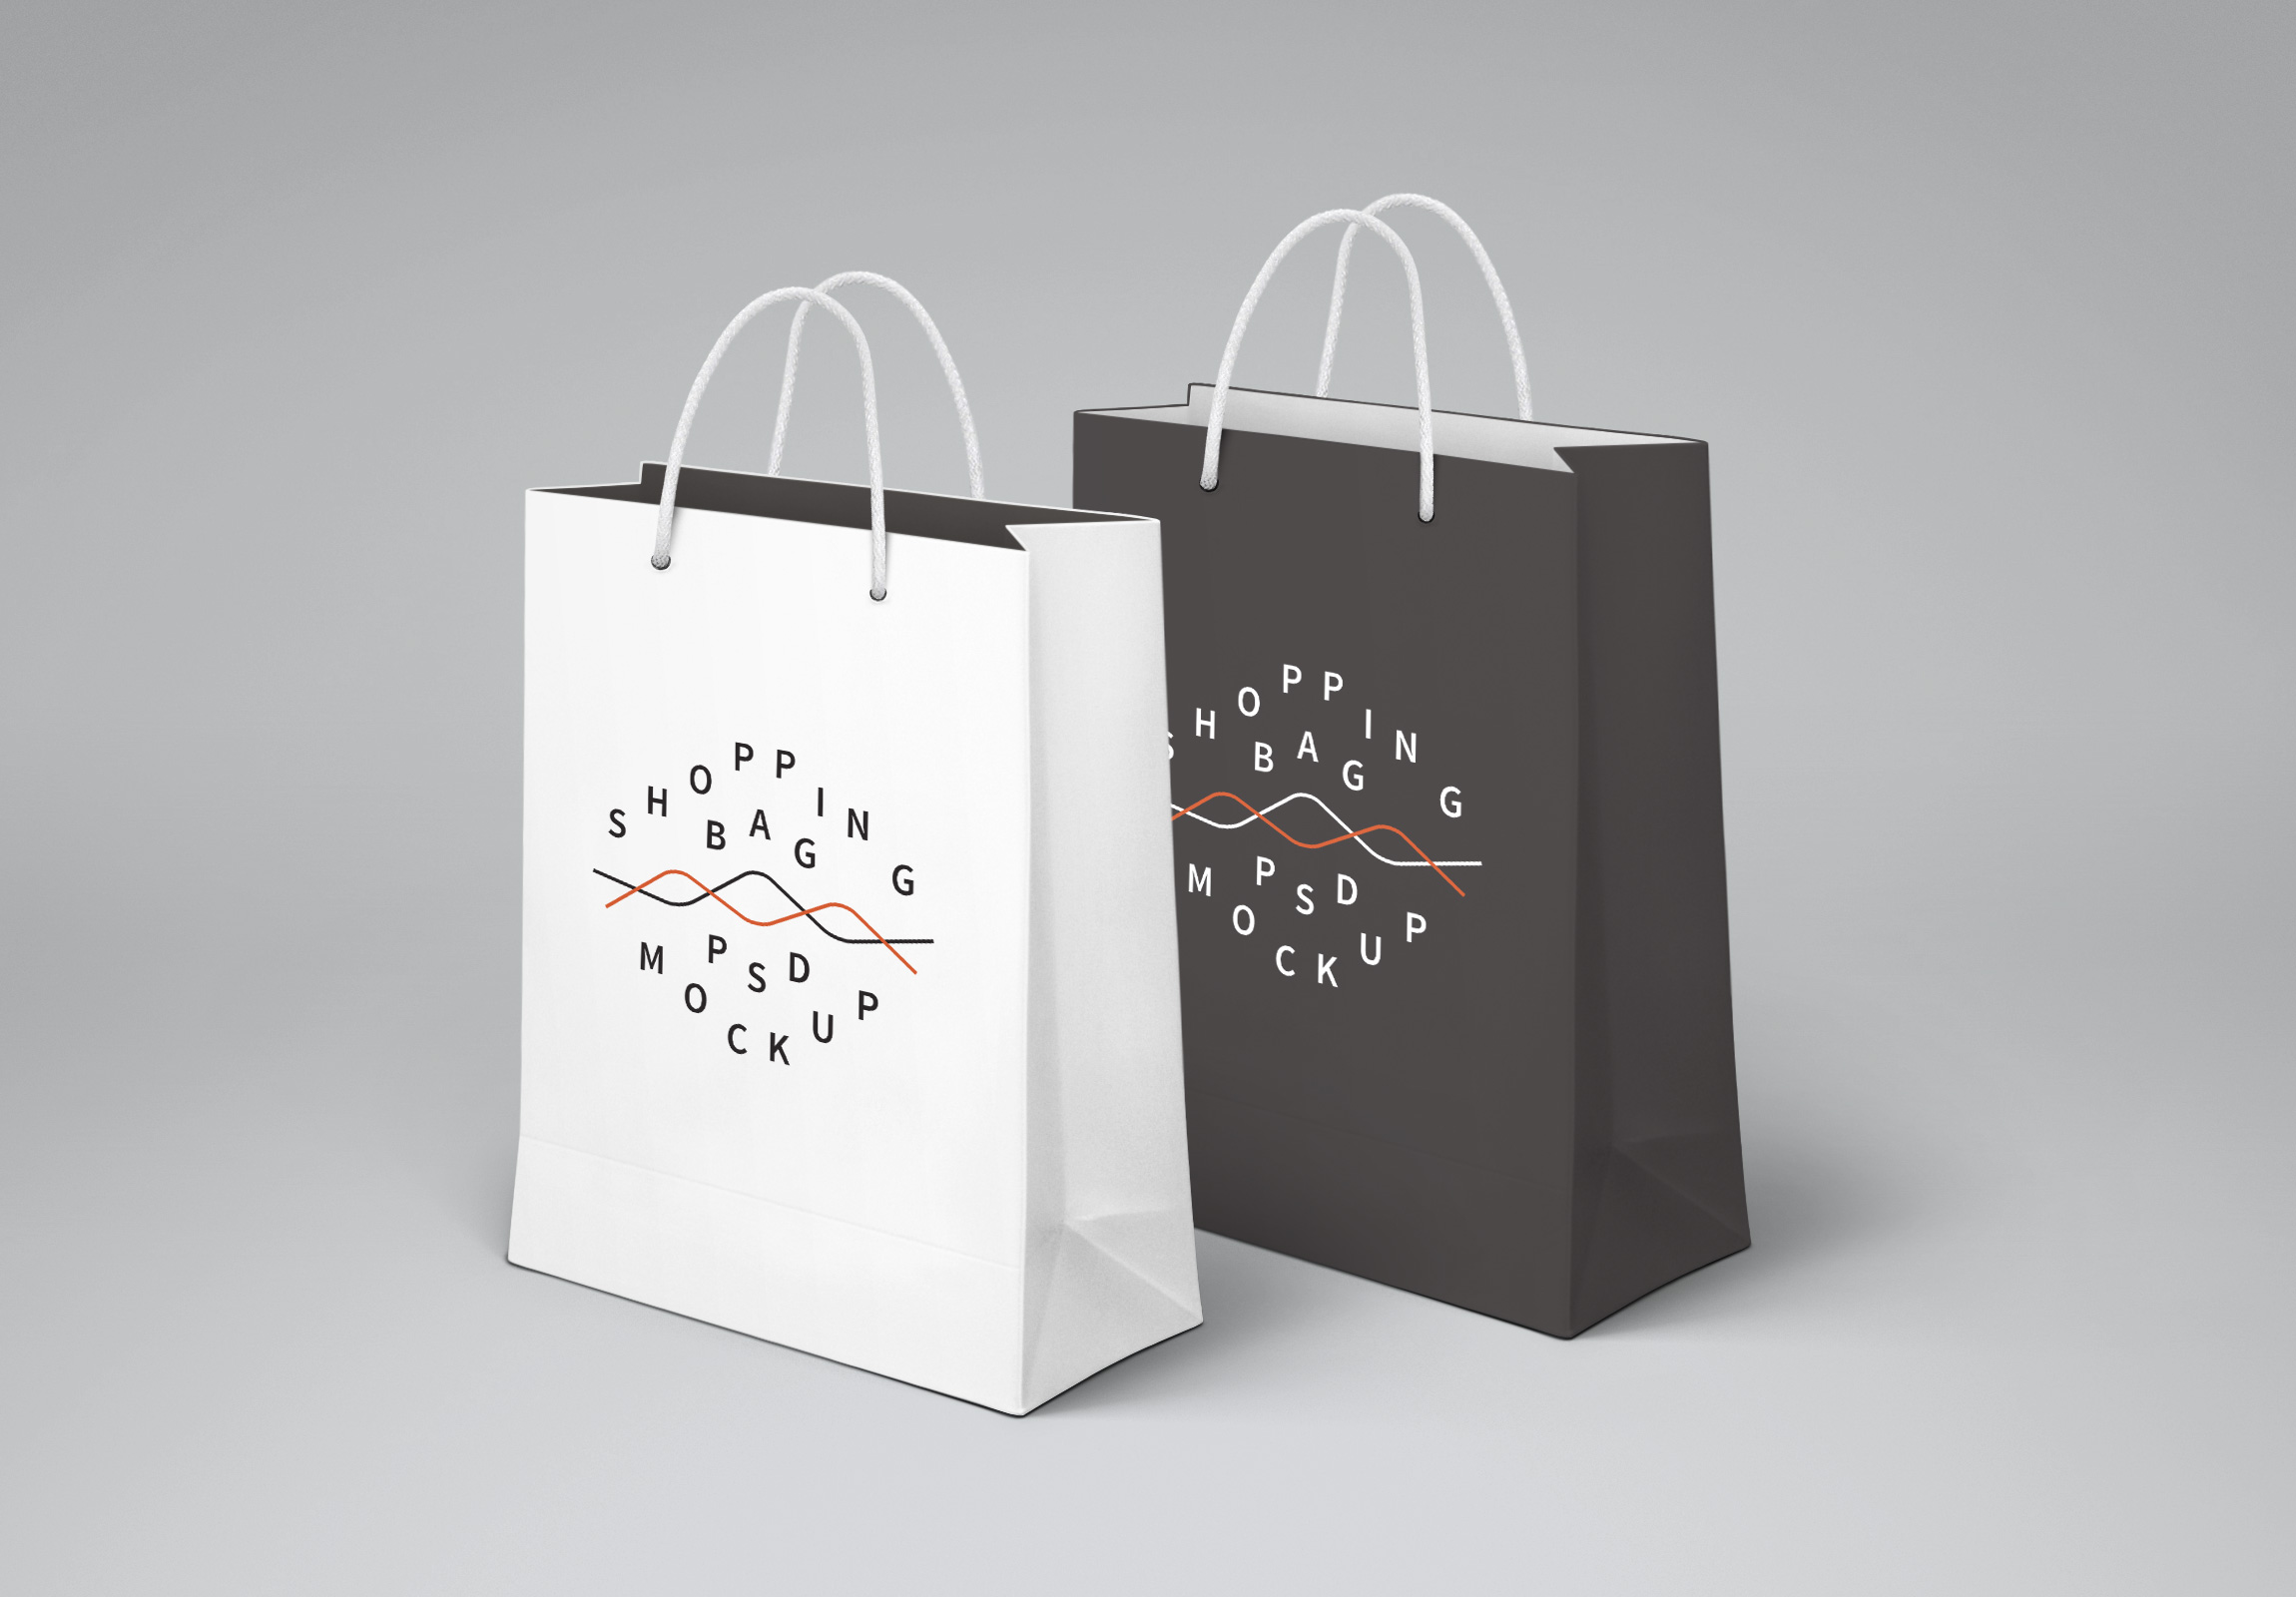 10 Shopping Bag PSD Mockup Images